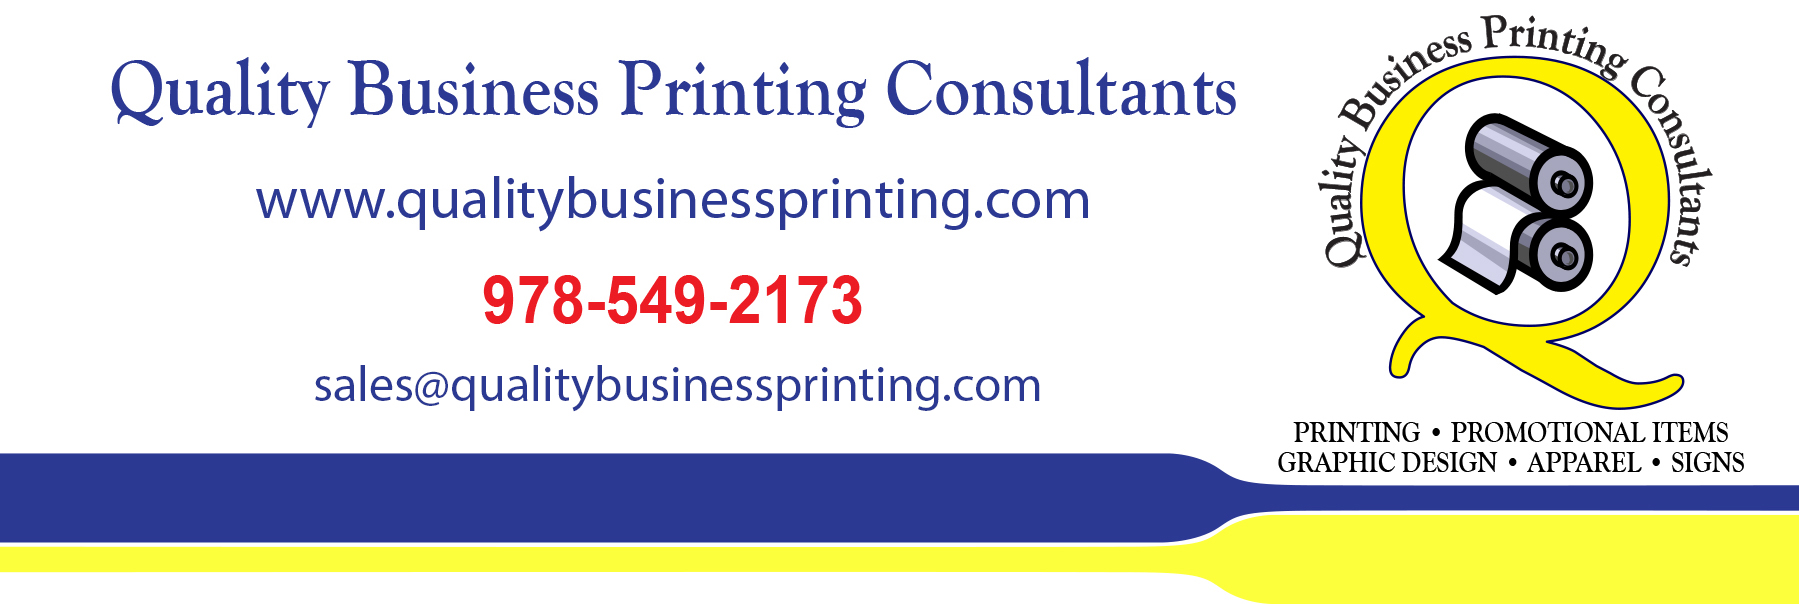 Quality Business Printing